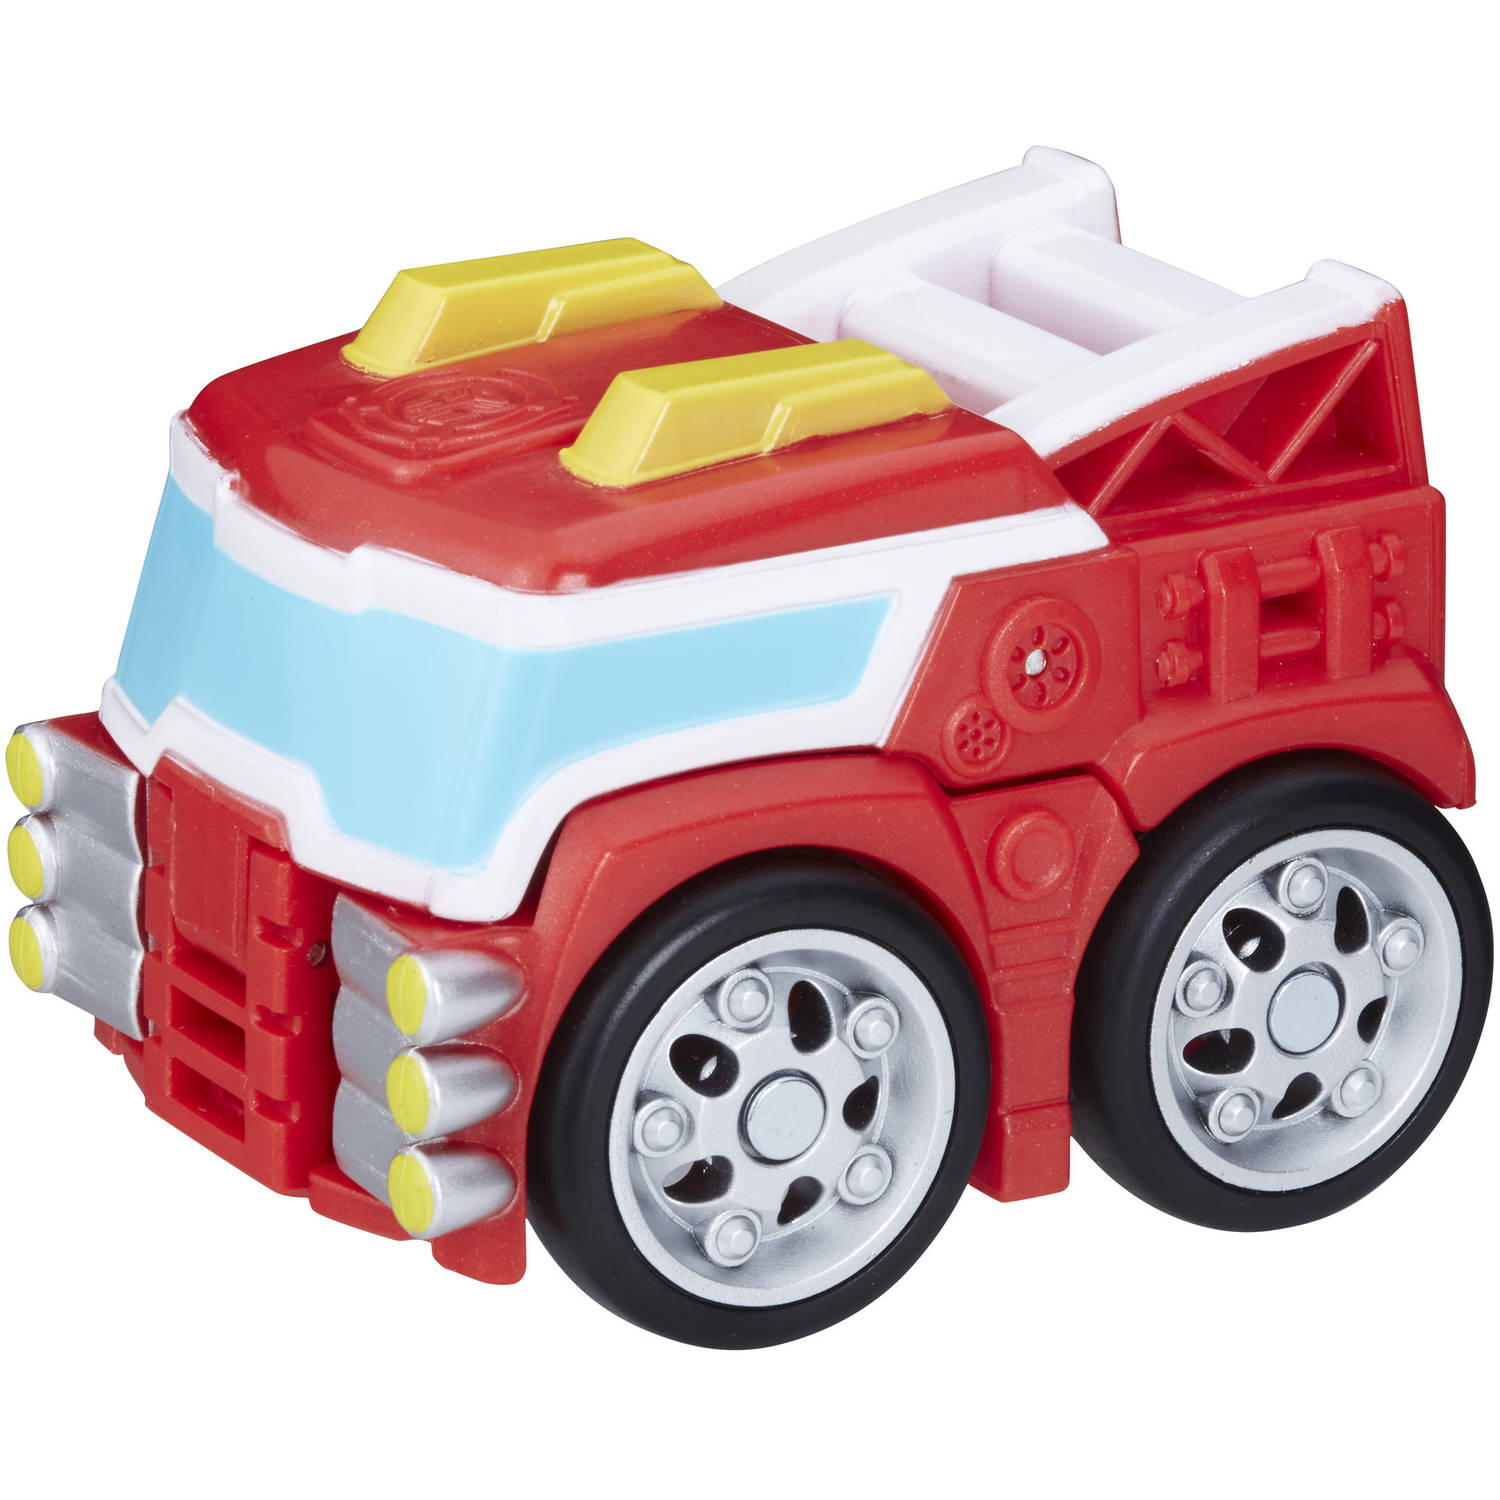 Playskool Heroes Transformers Rescue Bots Flip Racers Heatwave the Fire-Bot by Hasbro